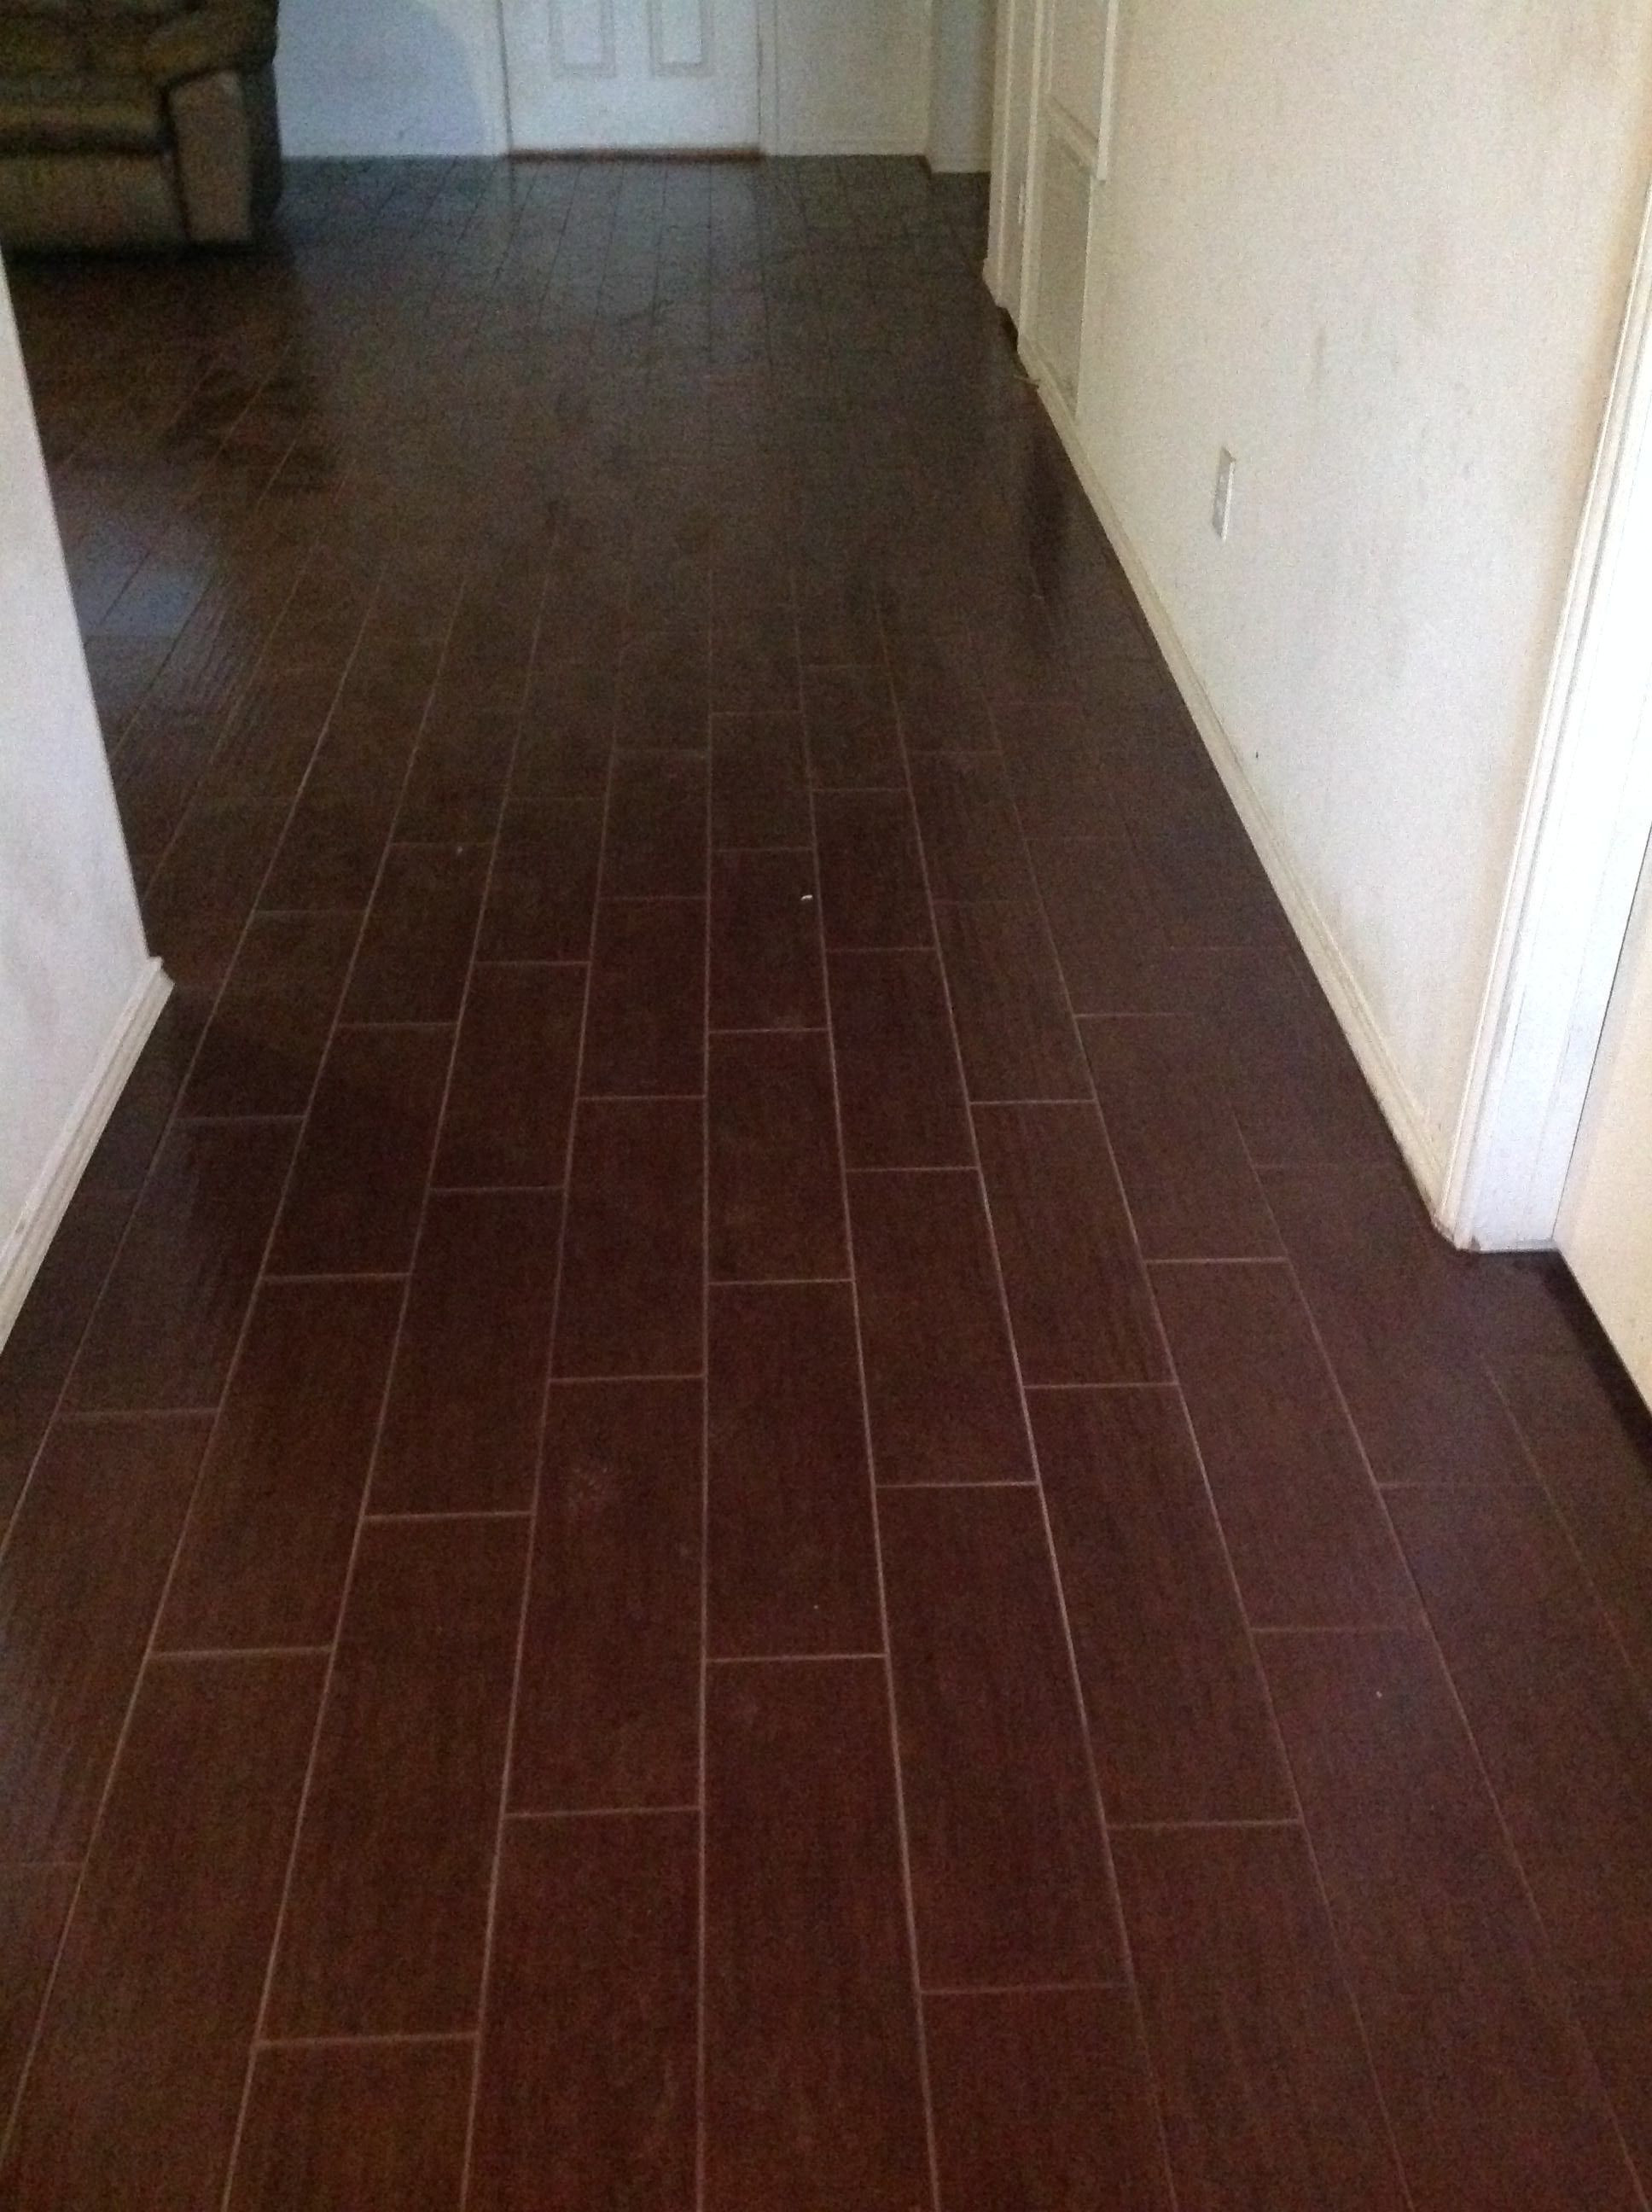 pictures of hardwood floors in hallways of our tile choice interceramic wood looking tile flooring in hallway inside our tile choice interceramic wood looking tile flooring in hallway installed for amy in wylie tx